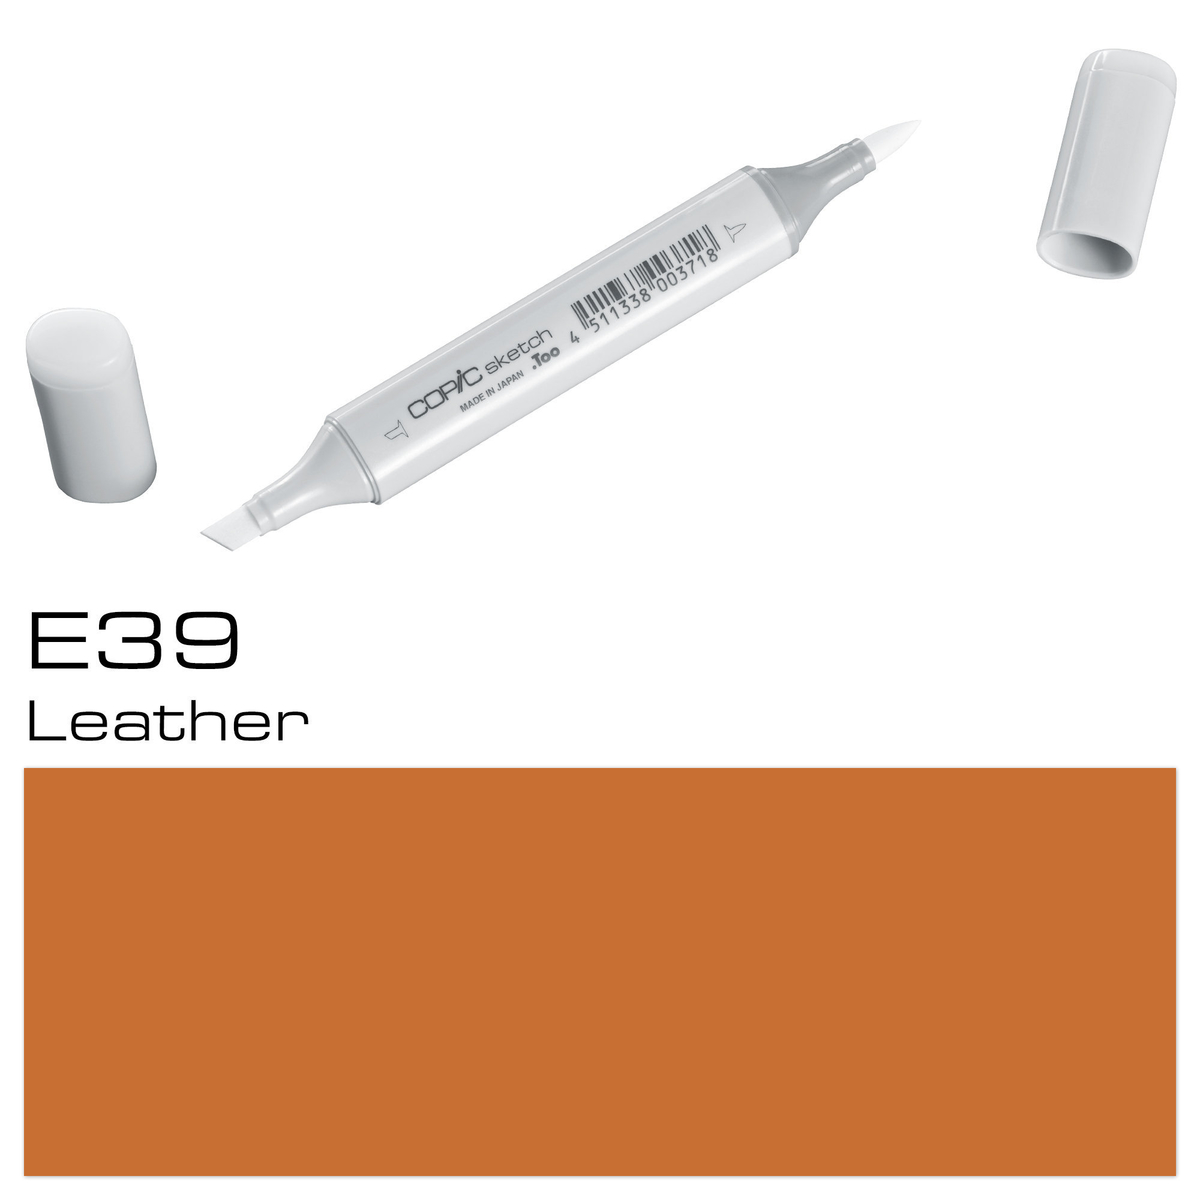 Copic Sketch E 39 leather